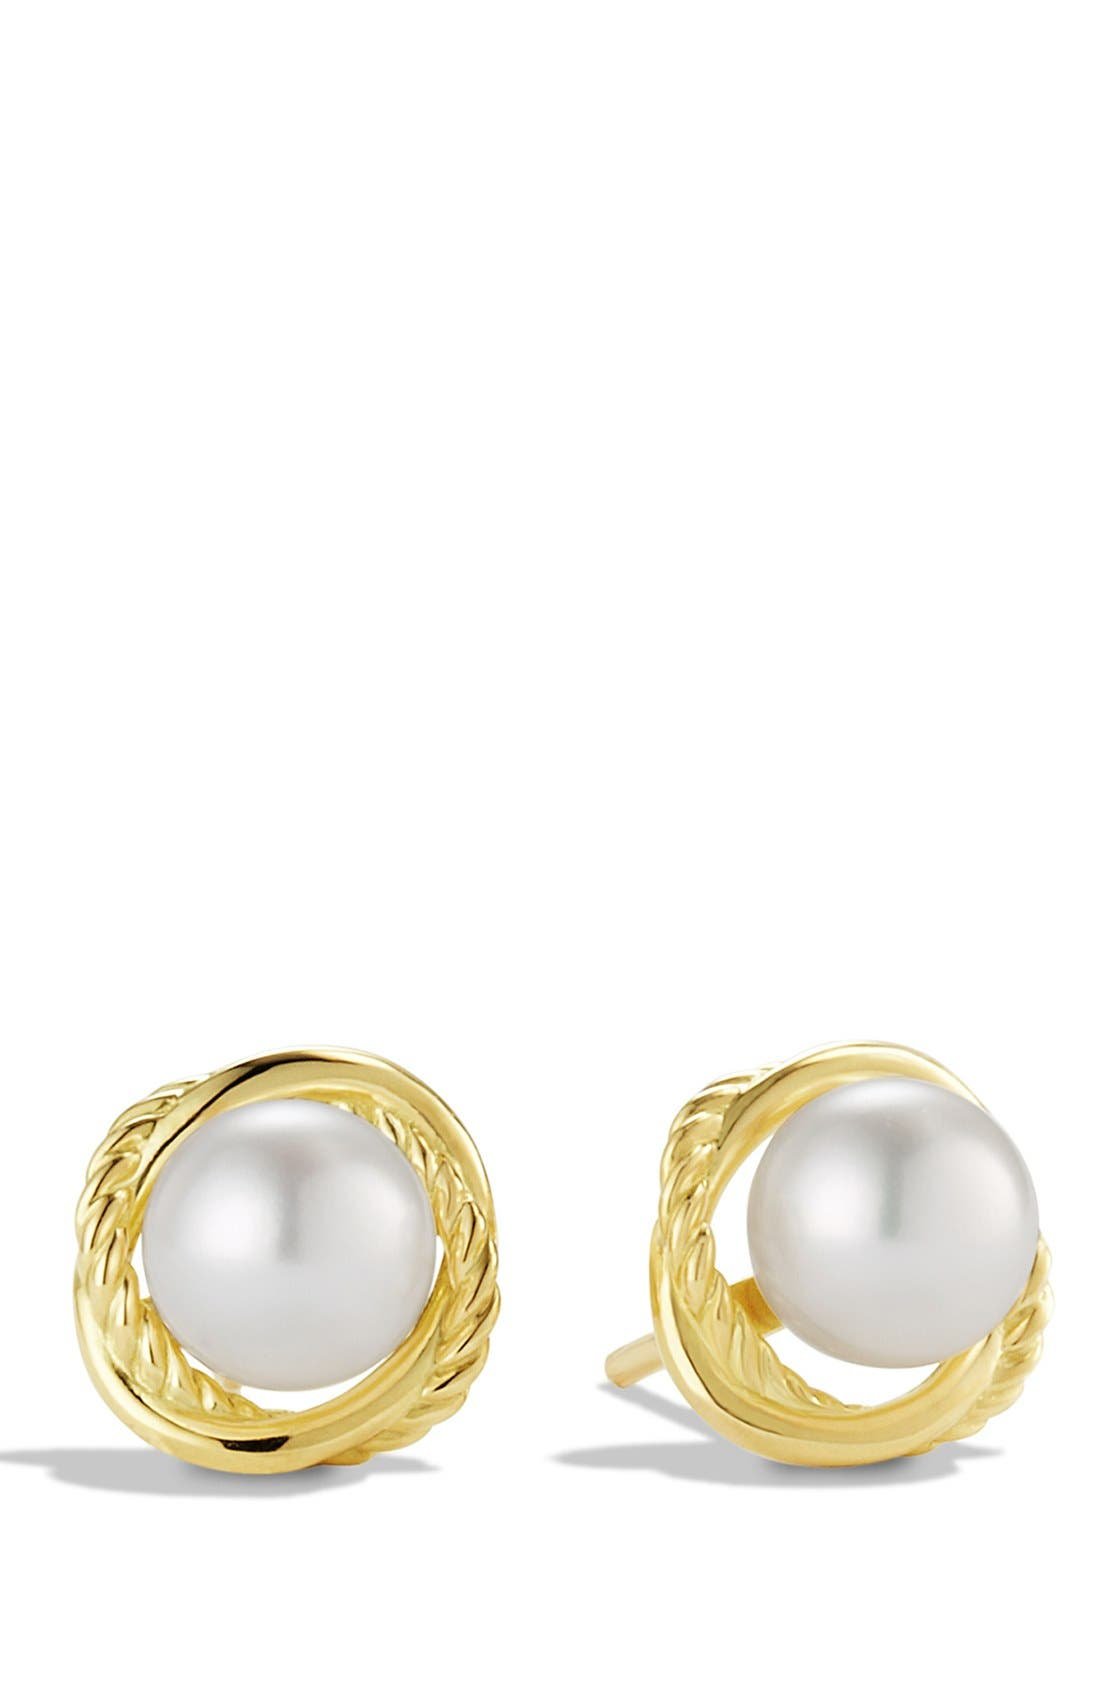 Alternate Image 1 Selected - David Yurman 'Infinity' Earrings with Pearls in Gold